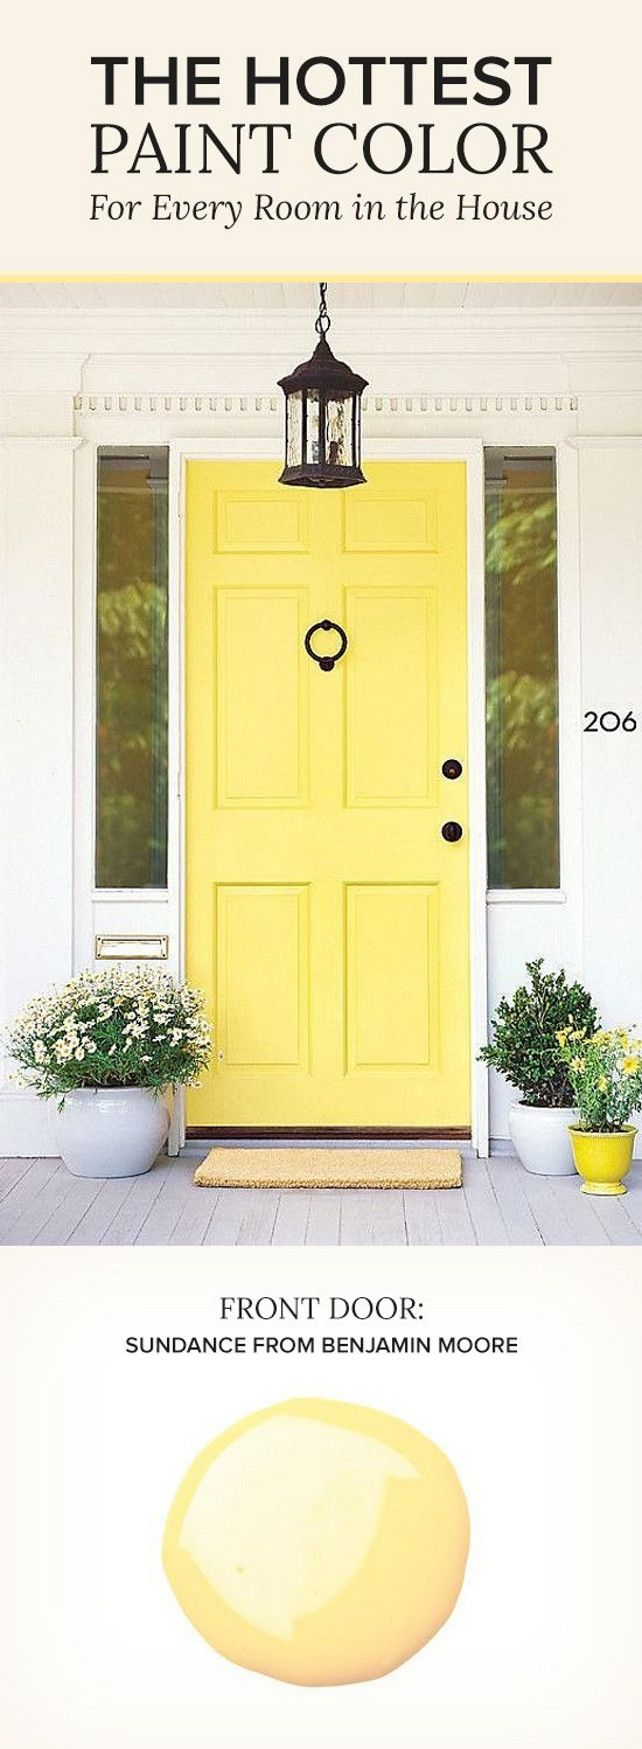 Sundance by Benjamin Moore. Yellow Paint Color. Front Door Paint Color. #BenjaminMooreSundance Via Pop Sugar.